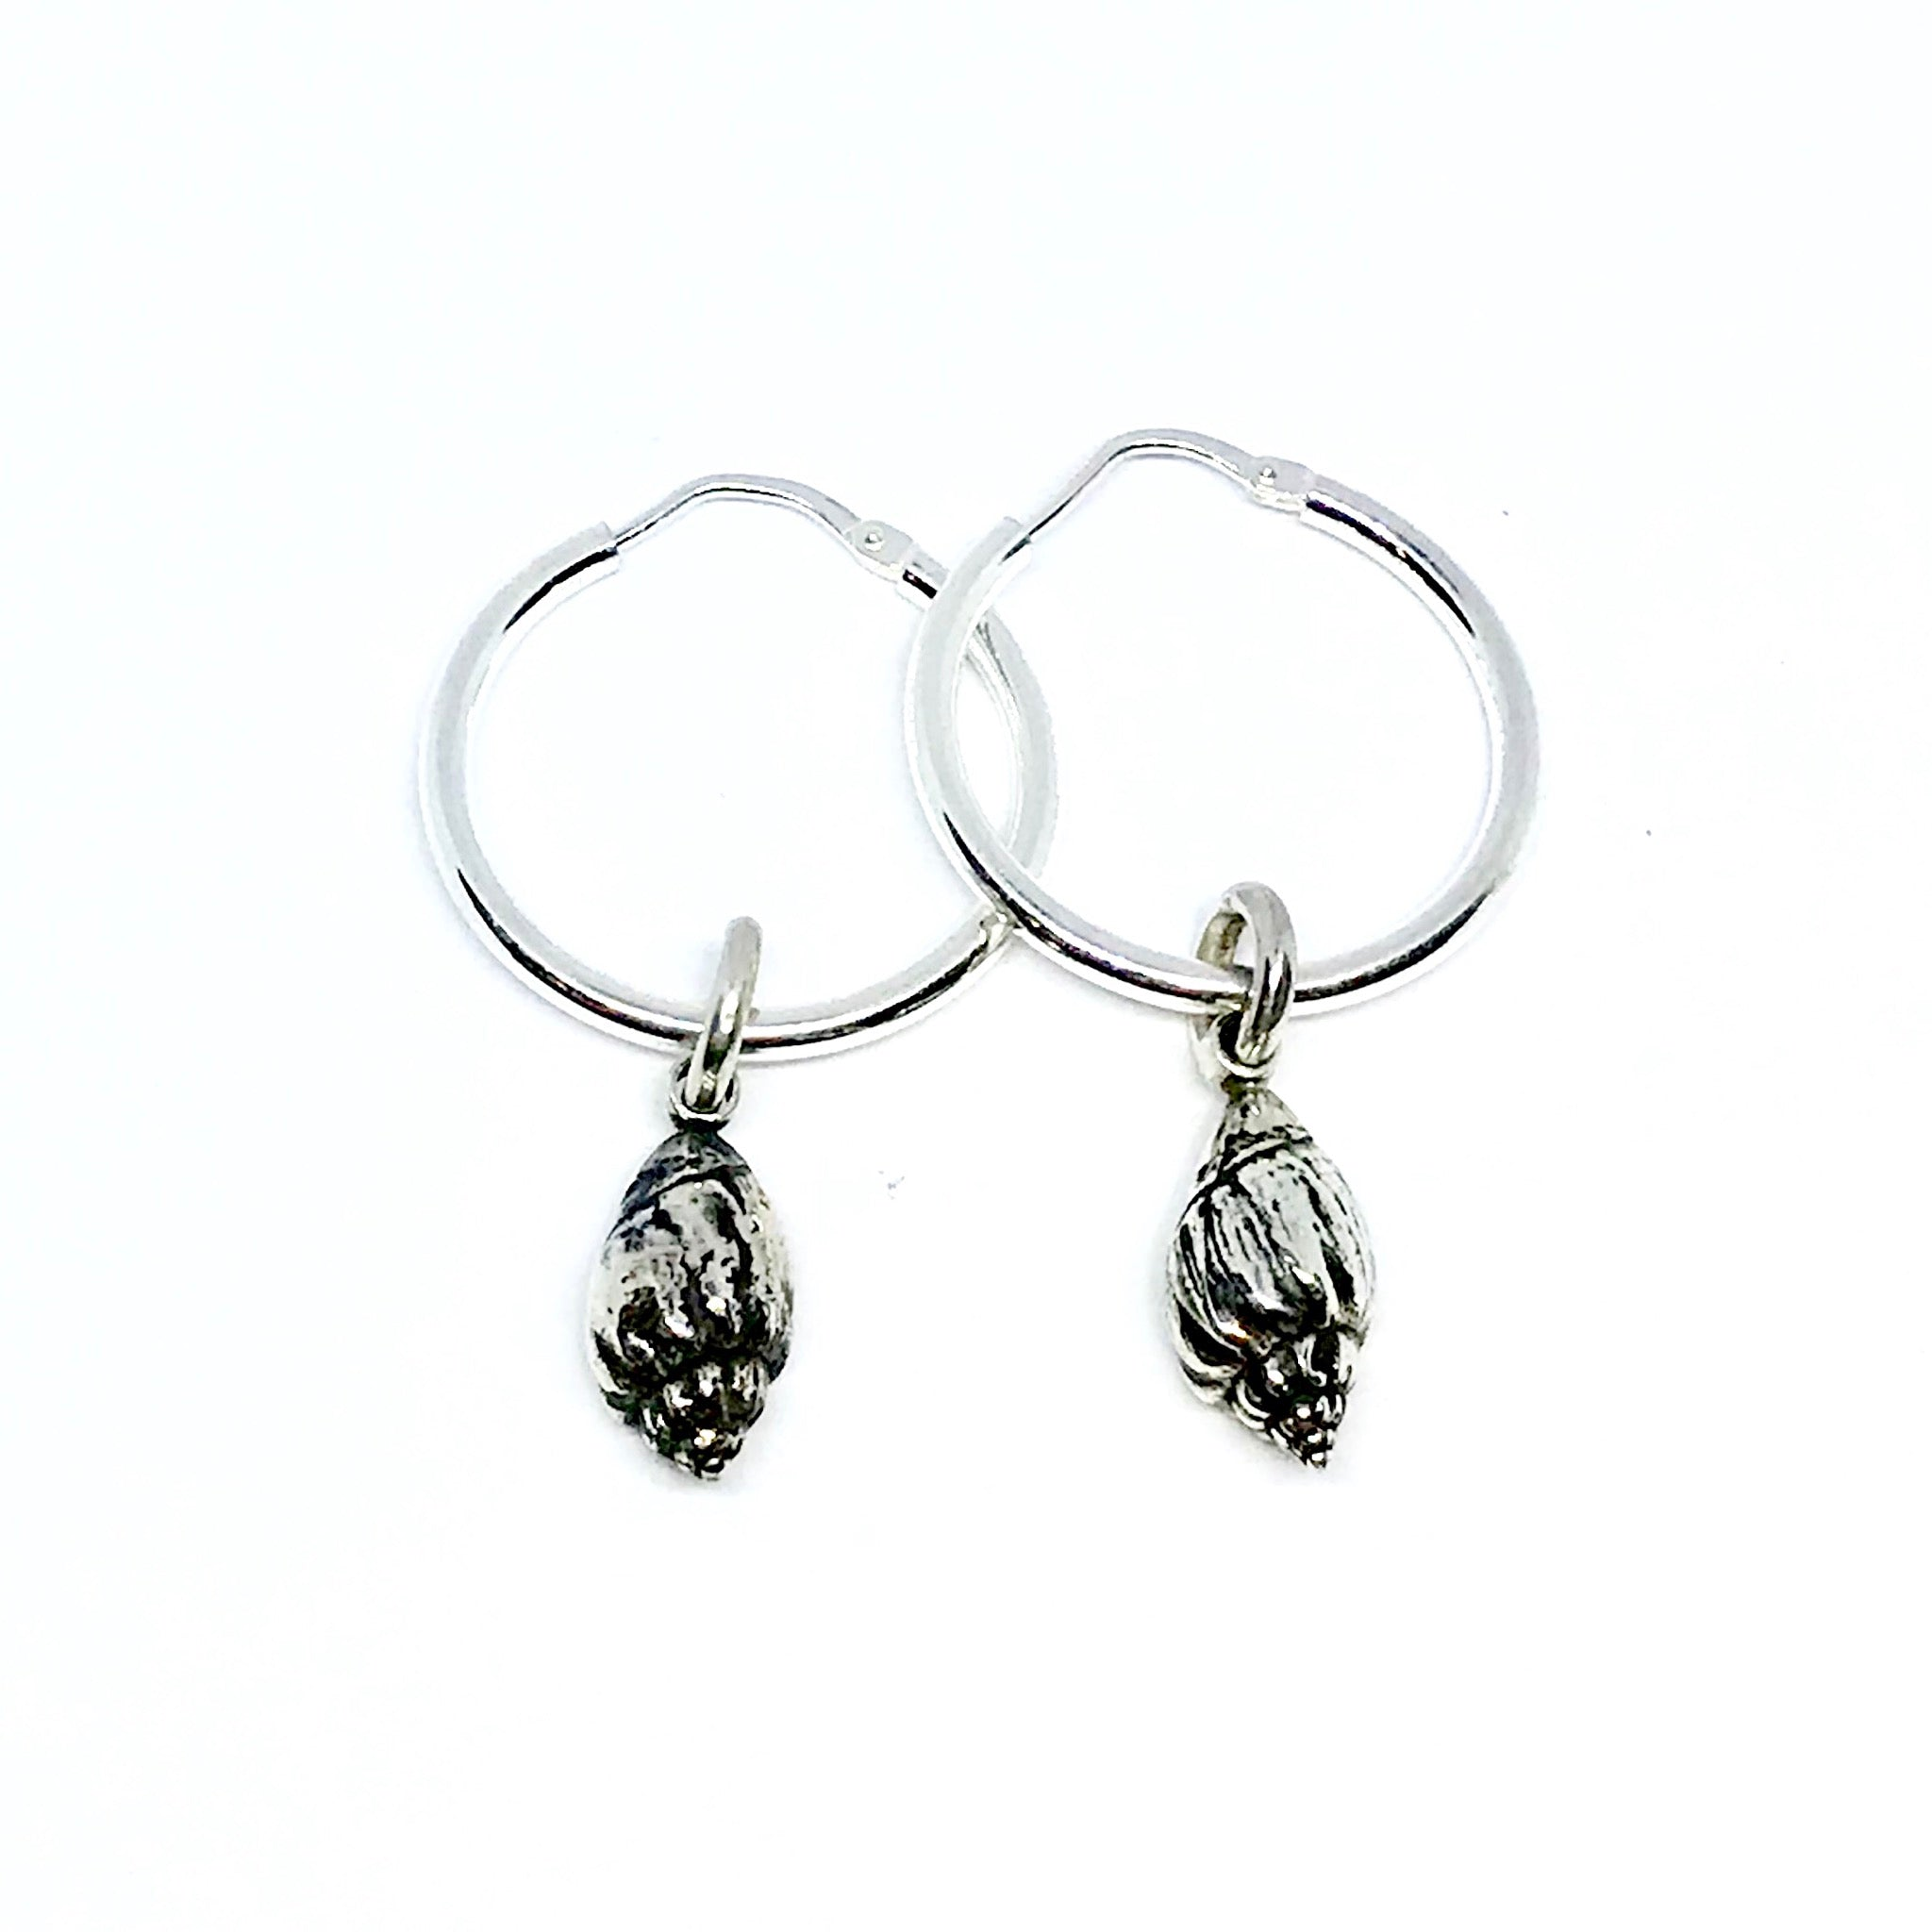 Beachcomber Earrings